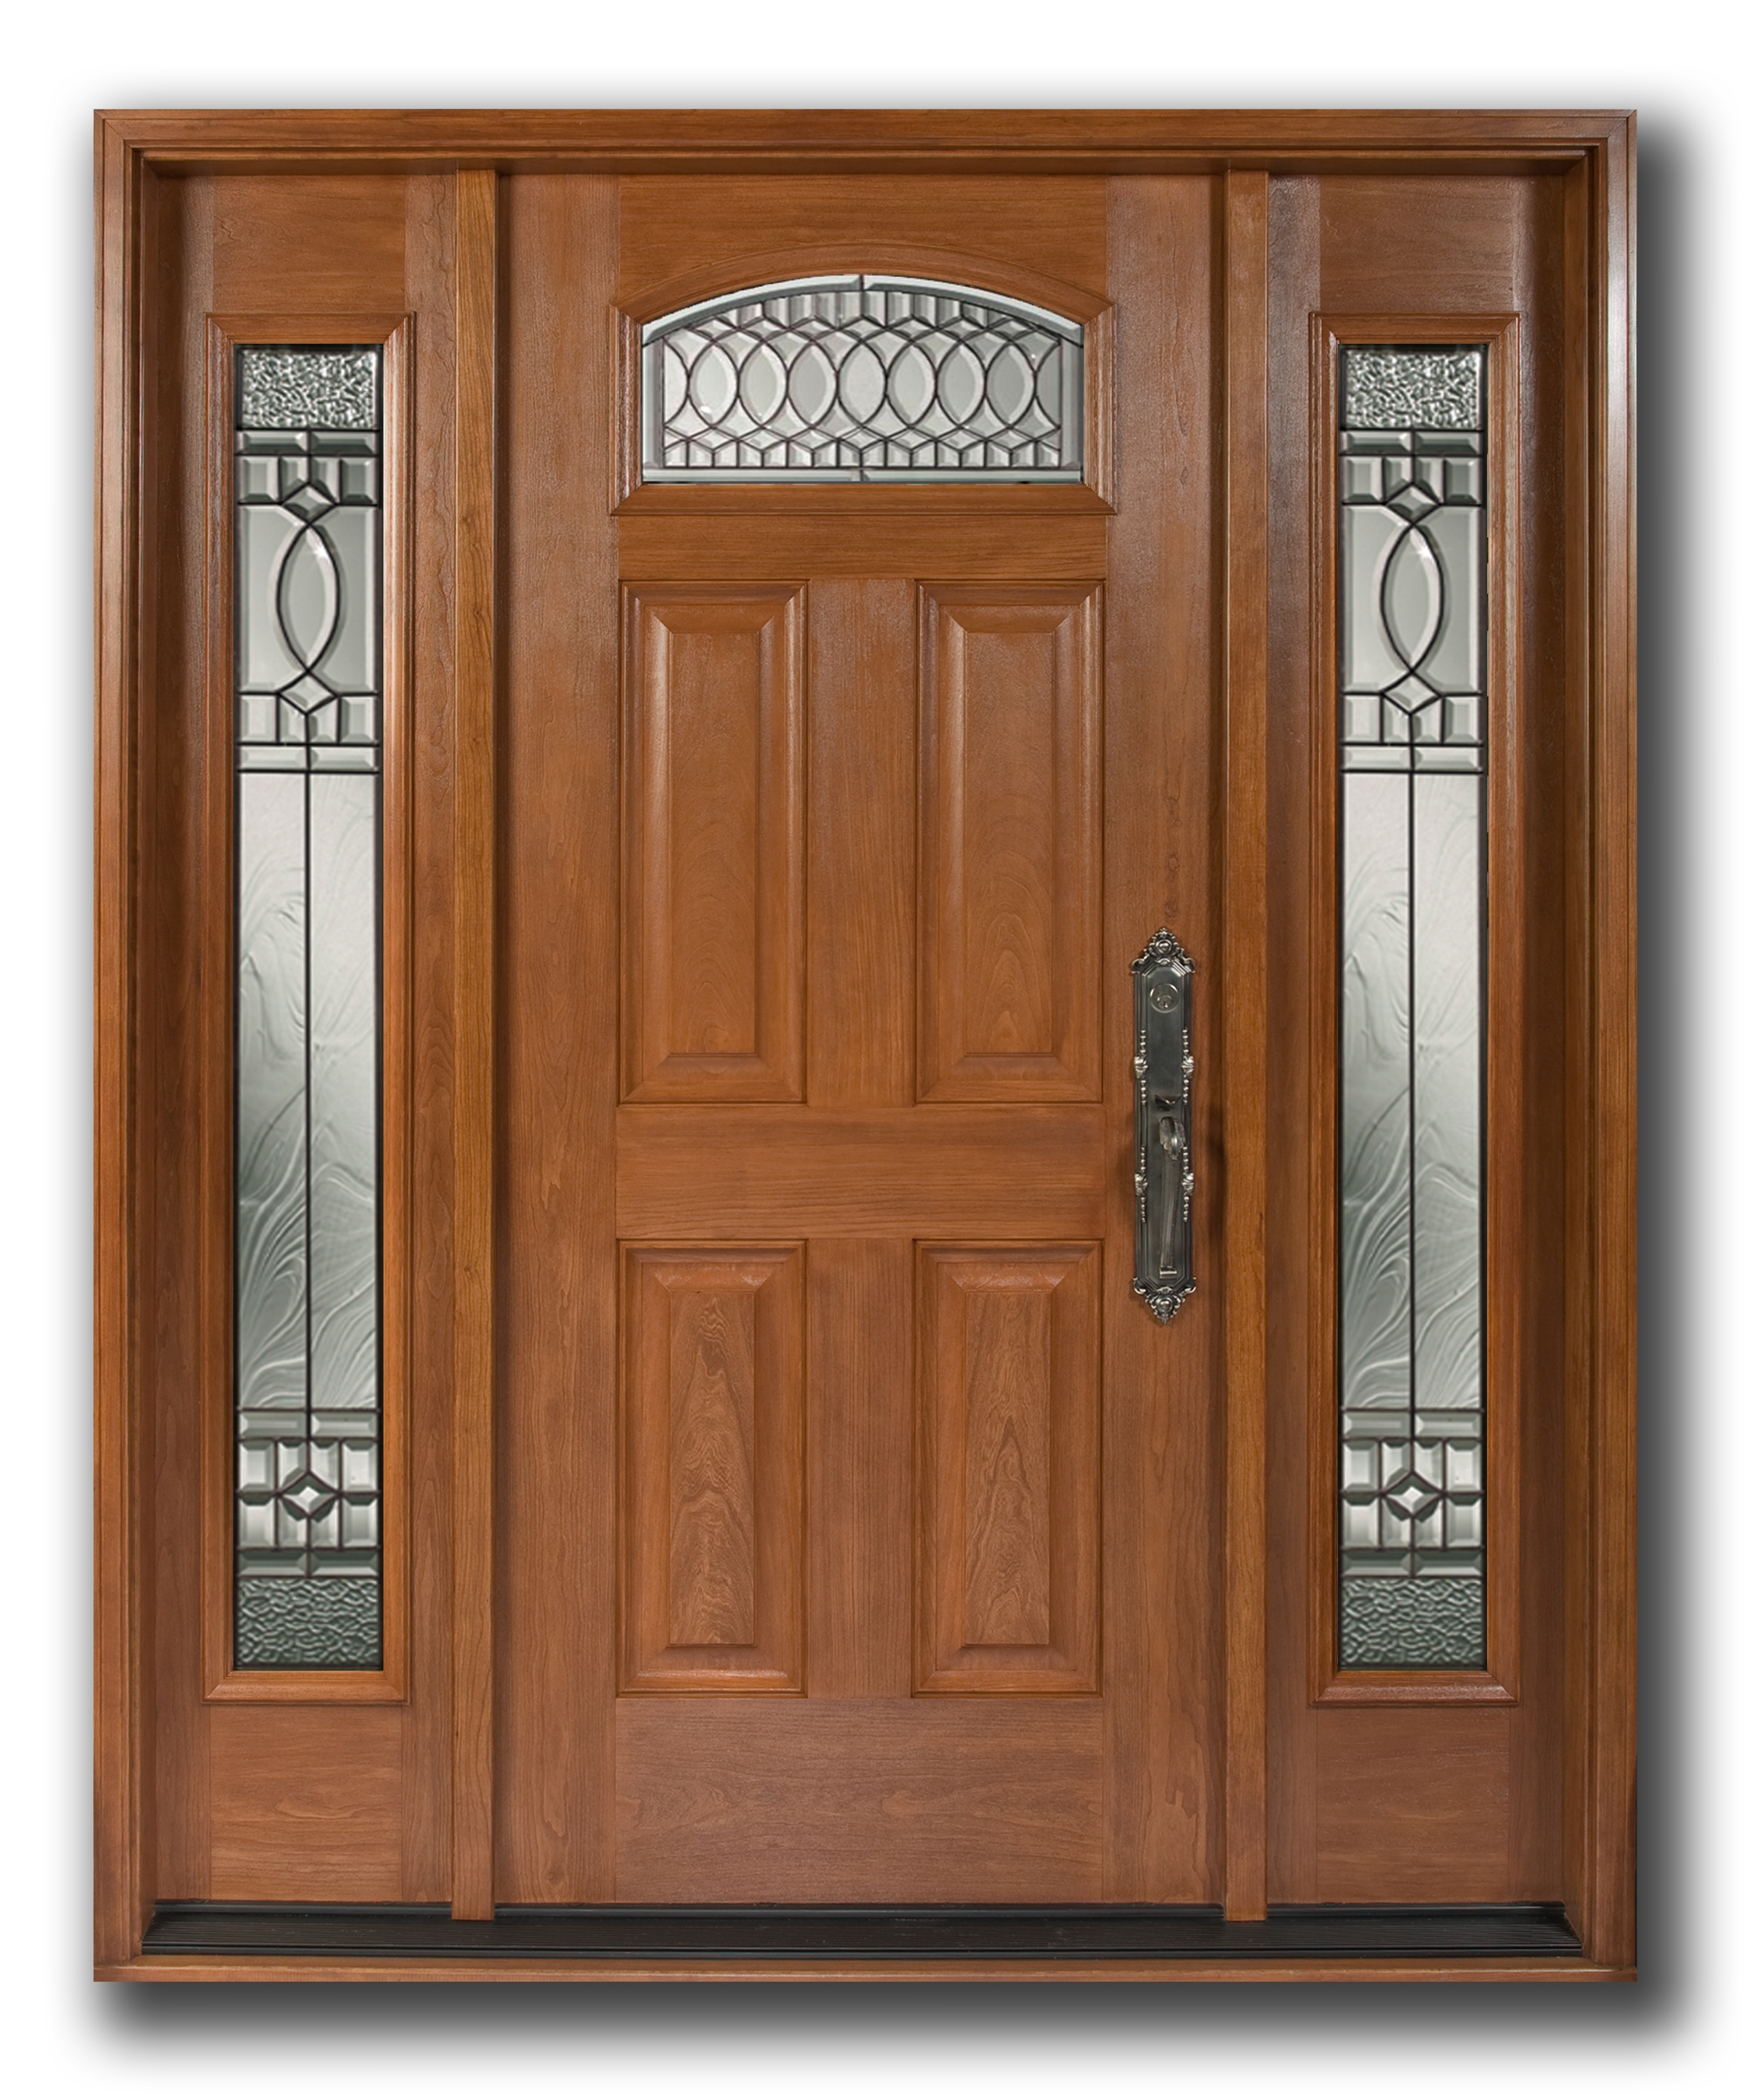 Mastergrain door series window door for Door and window design